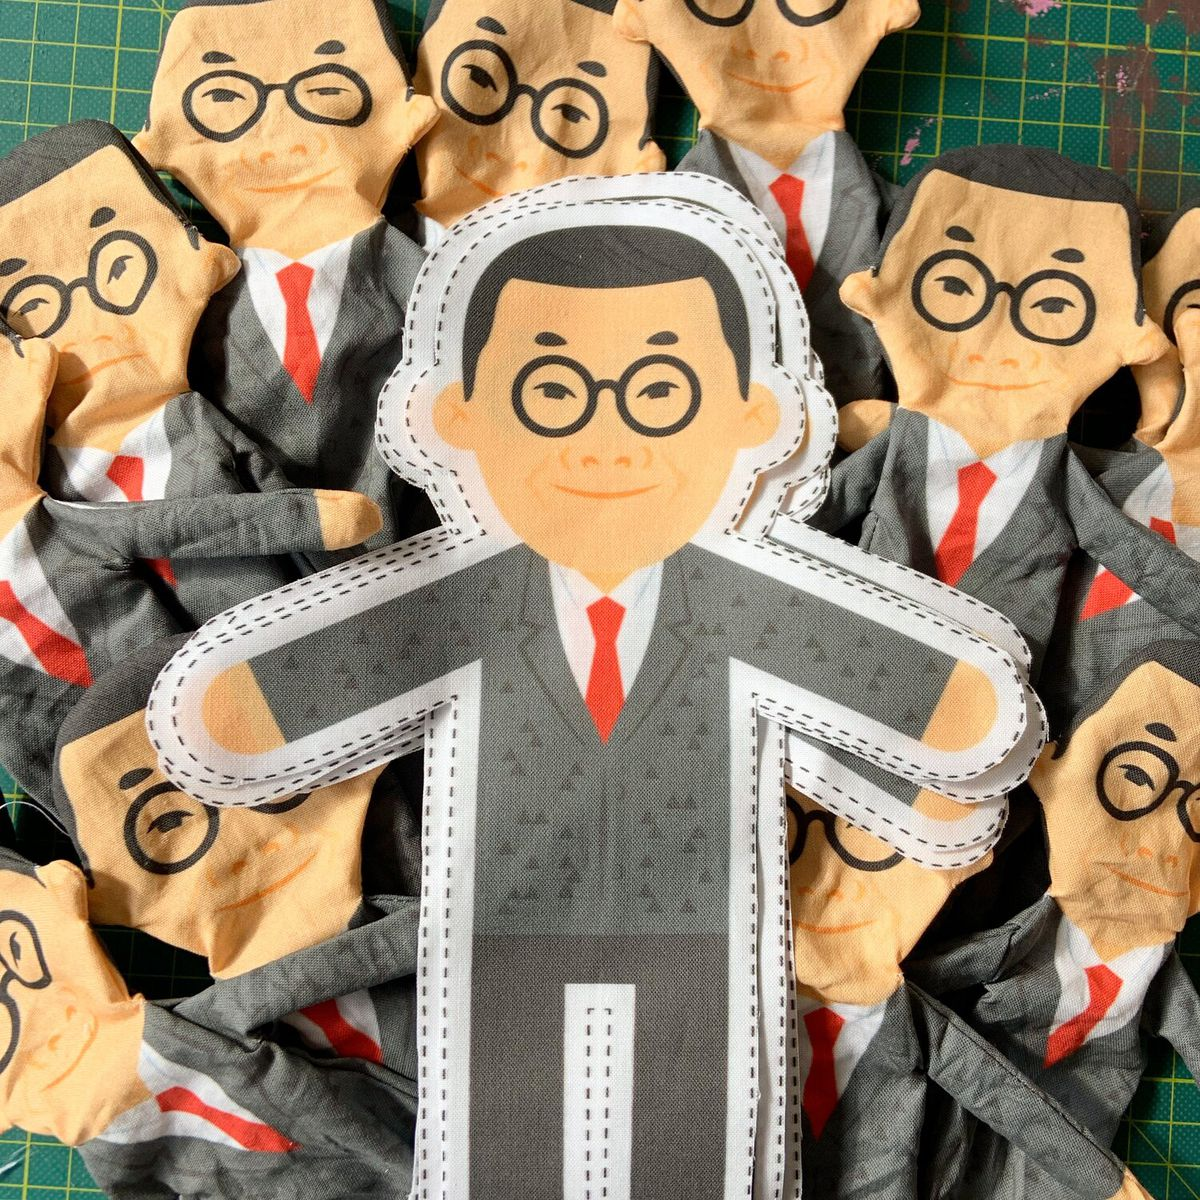 Sewing pattern in shape of I.M. Pei.